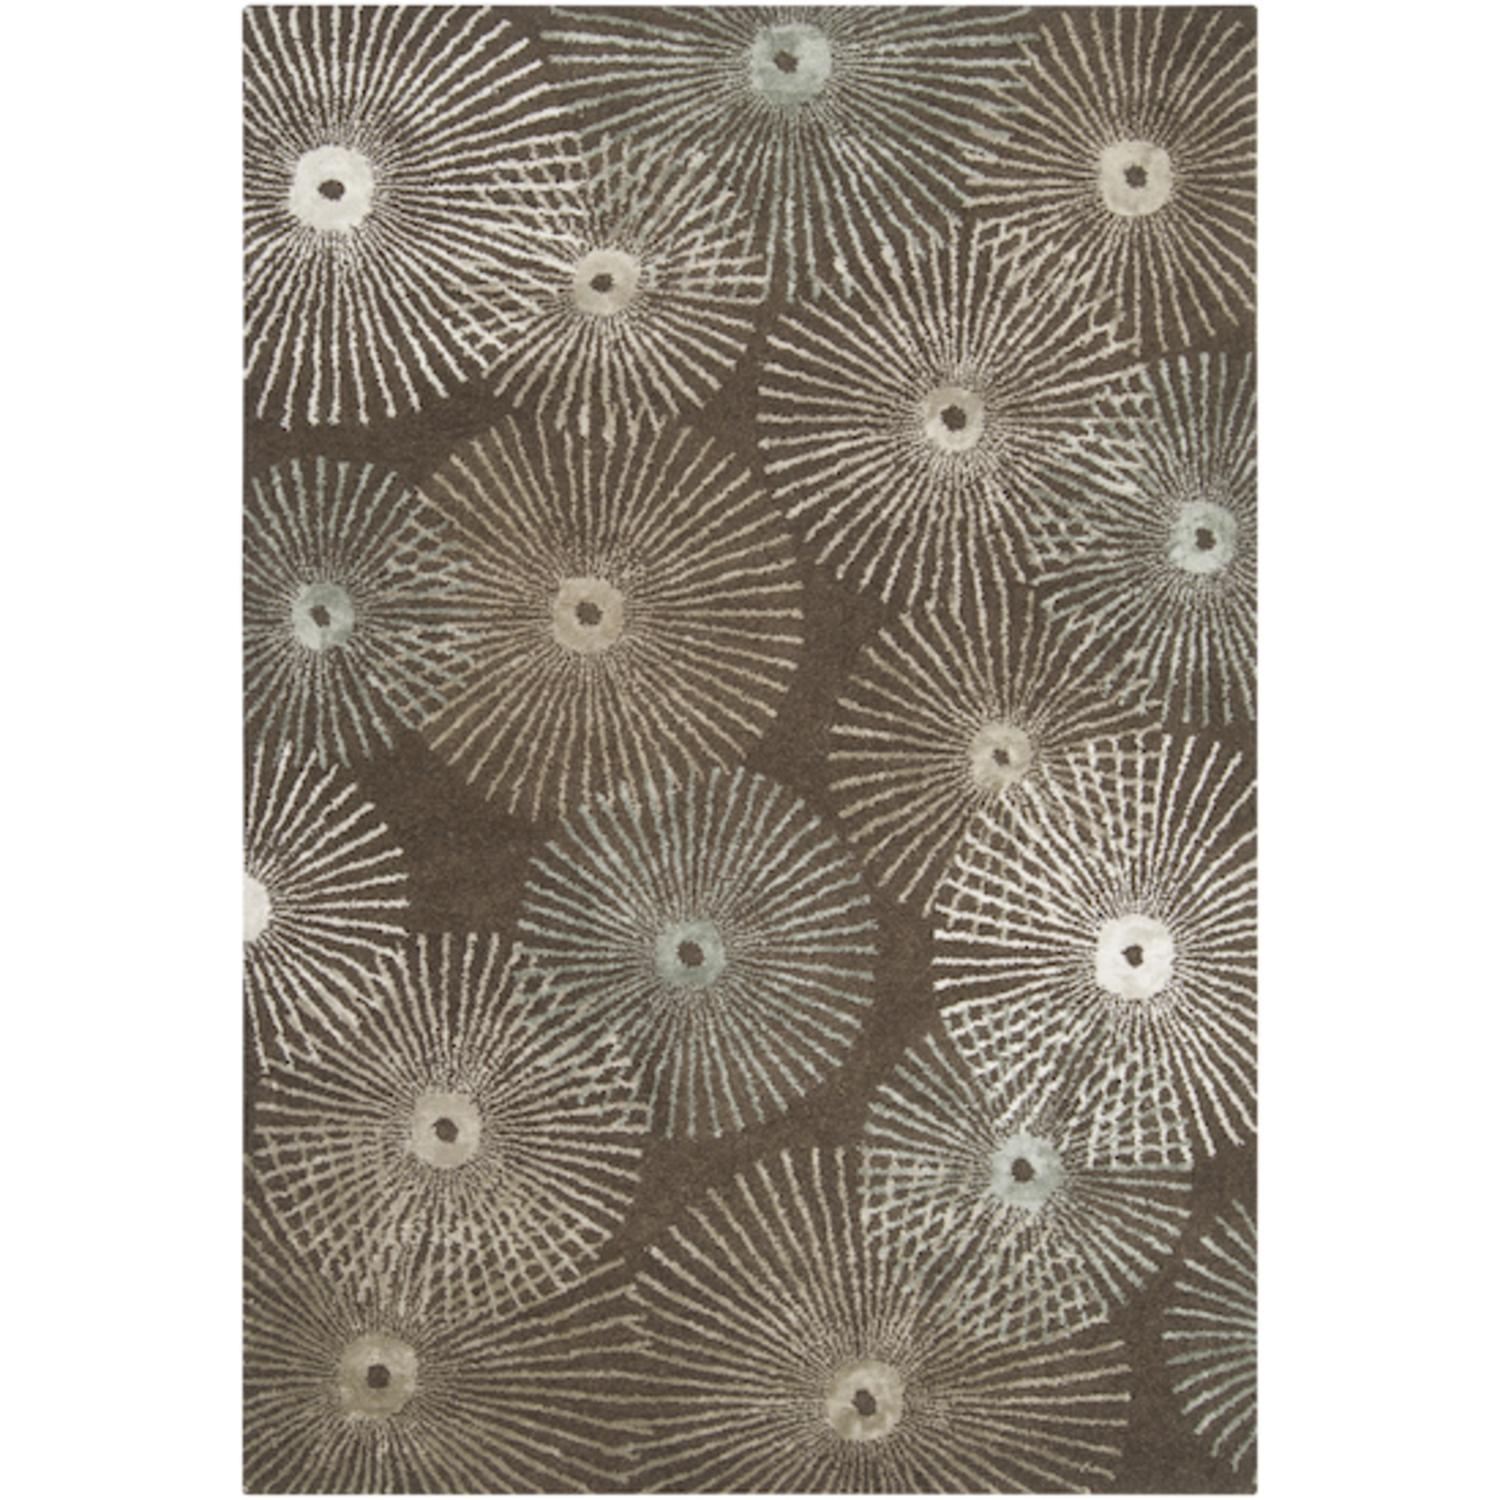 9' x 13' Belle Fleur Army Green & Gray Sage Wool Blend Area Throw Rug